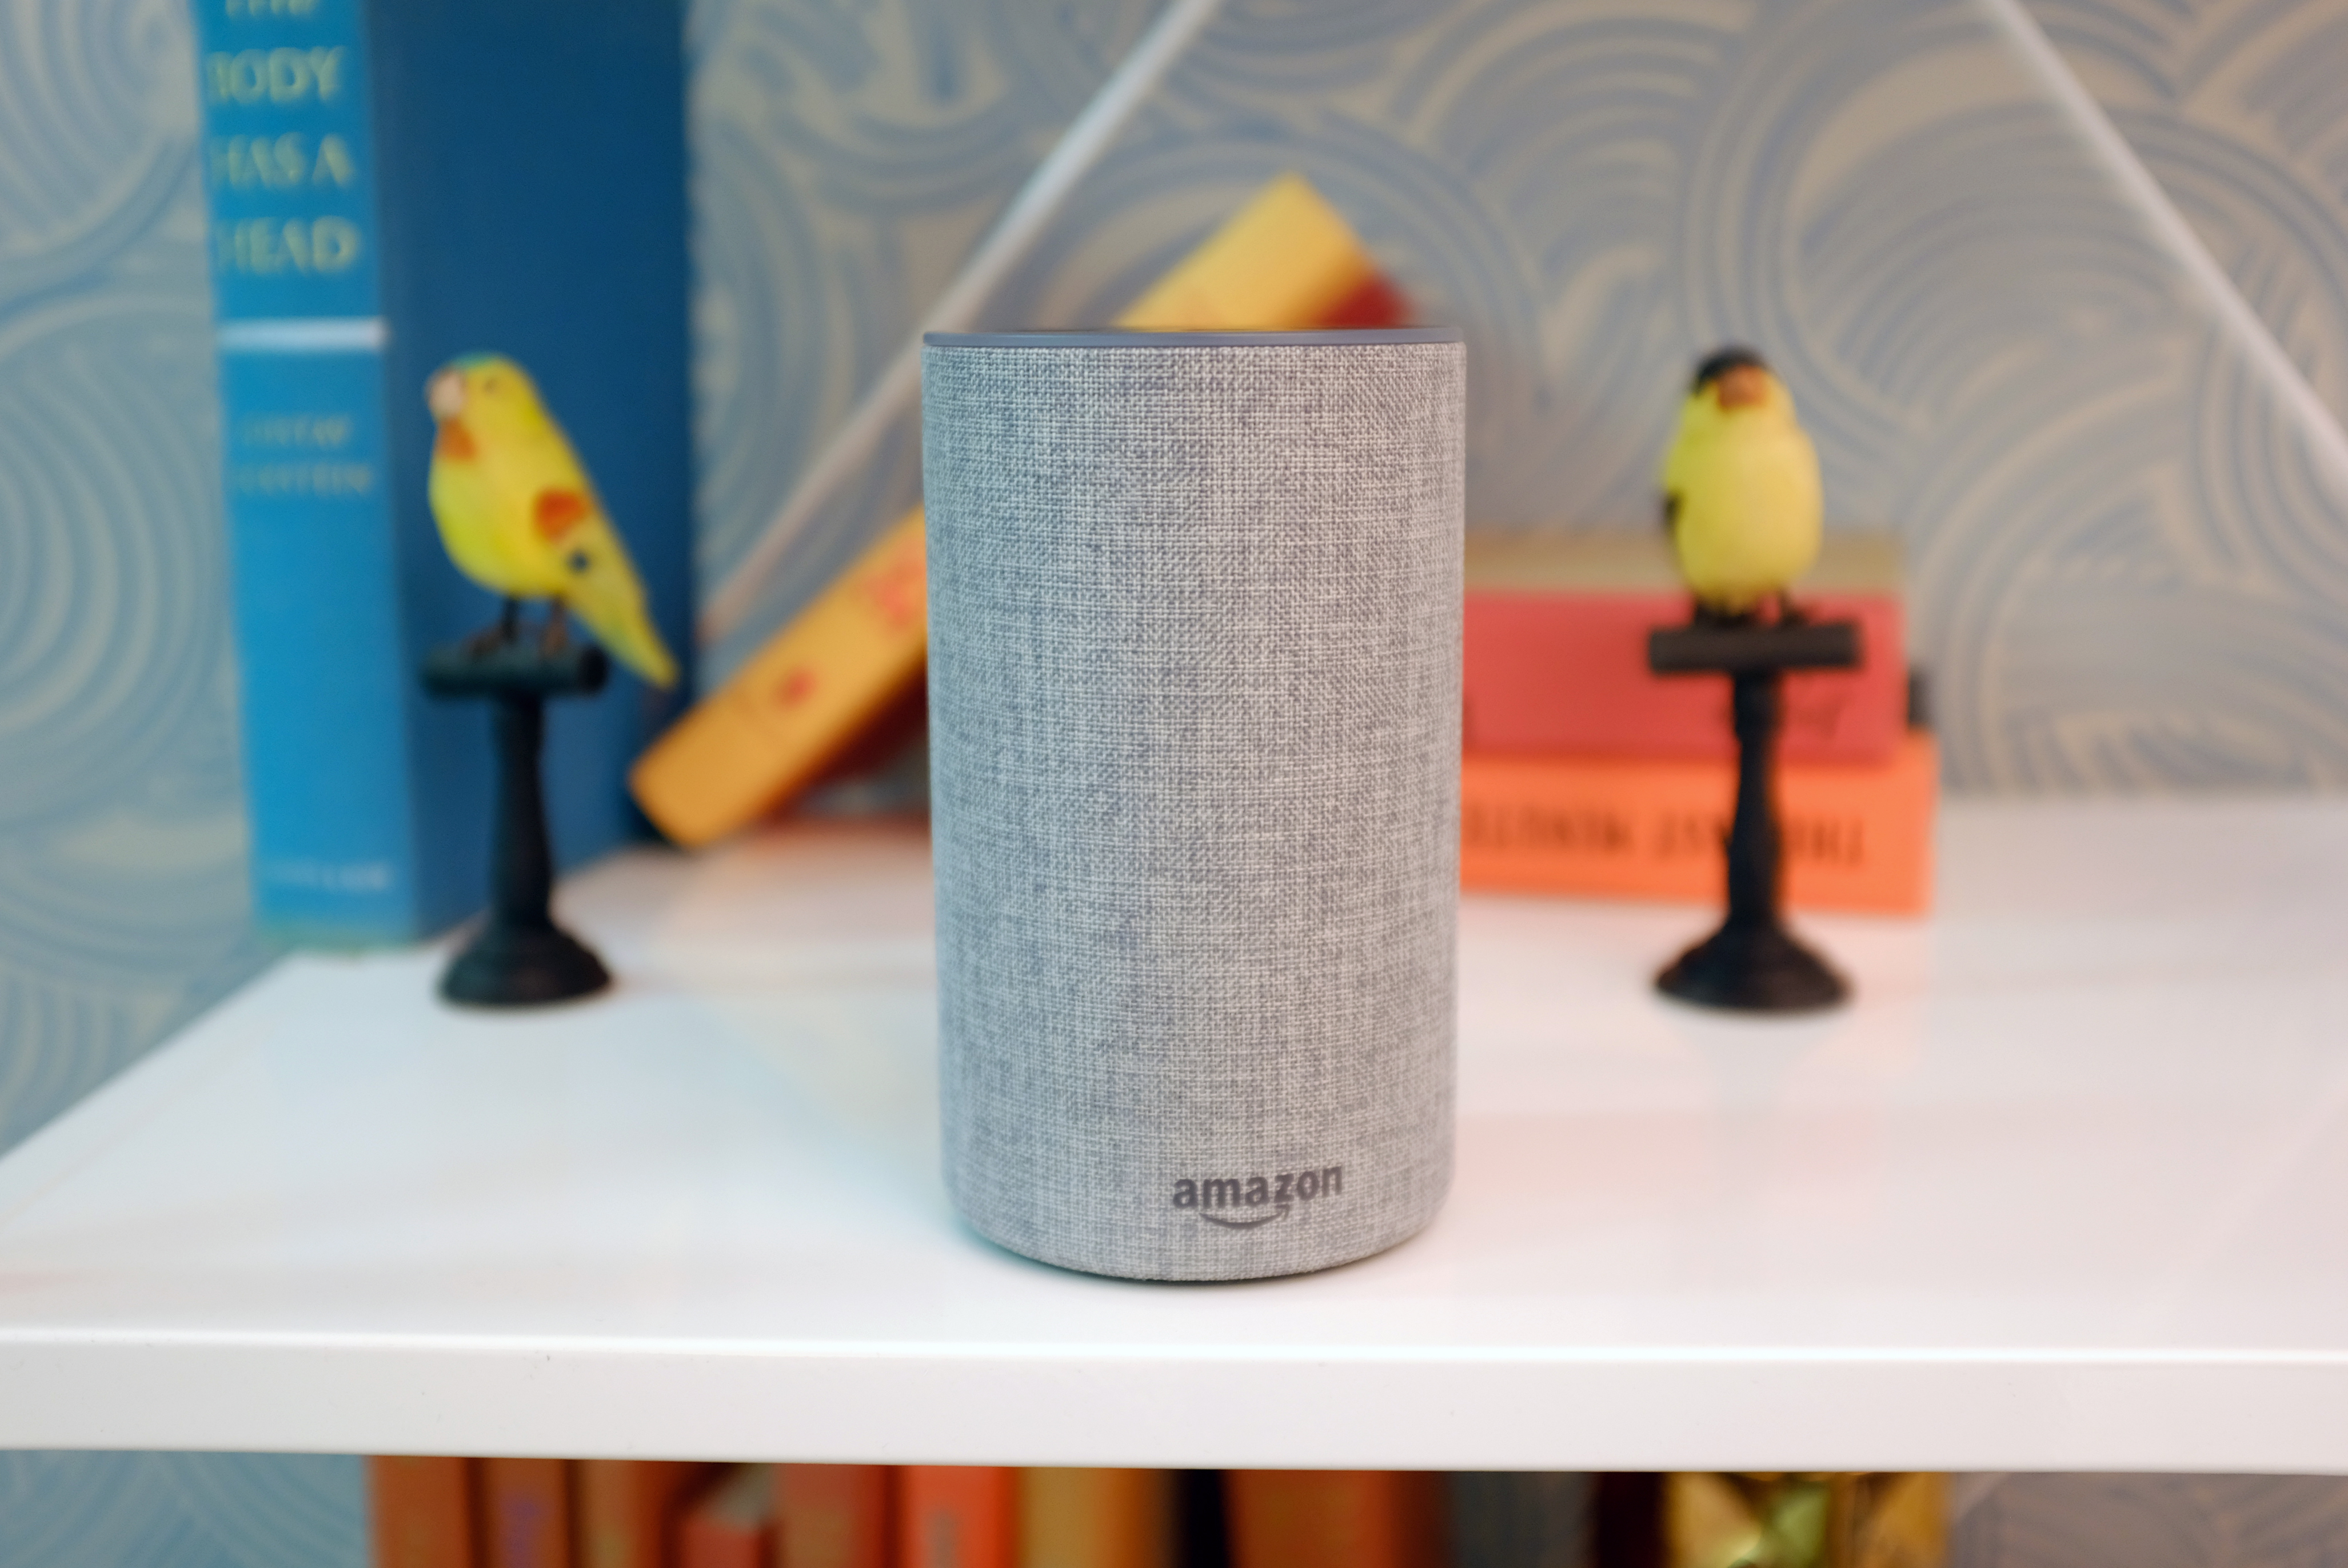 Amazon brings voice control to its Alexa app for Android, with iOS coming soon